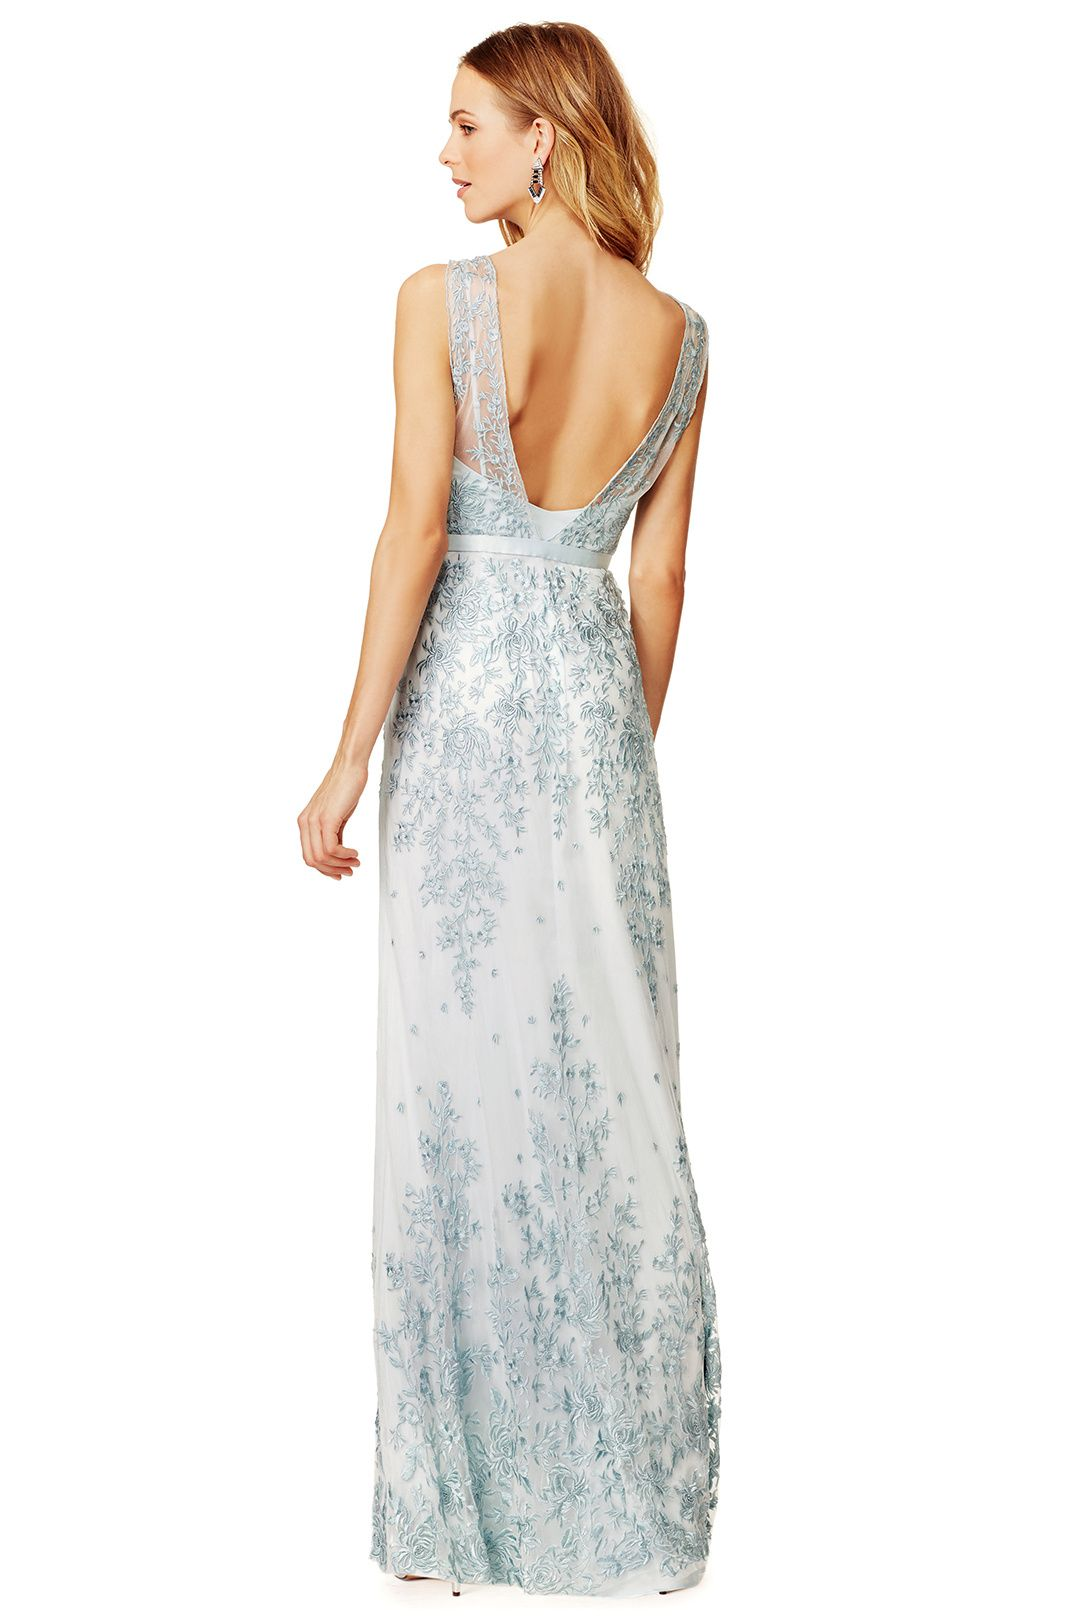 powder blue floor length gown in romantic lace // CATHERINE DEANE Aqua Amira Gown